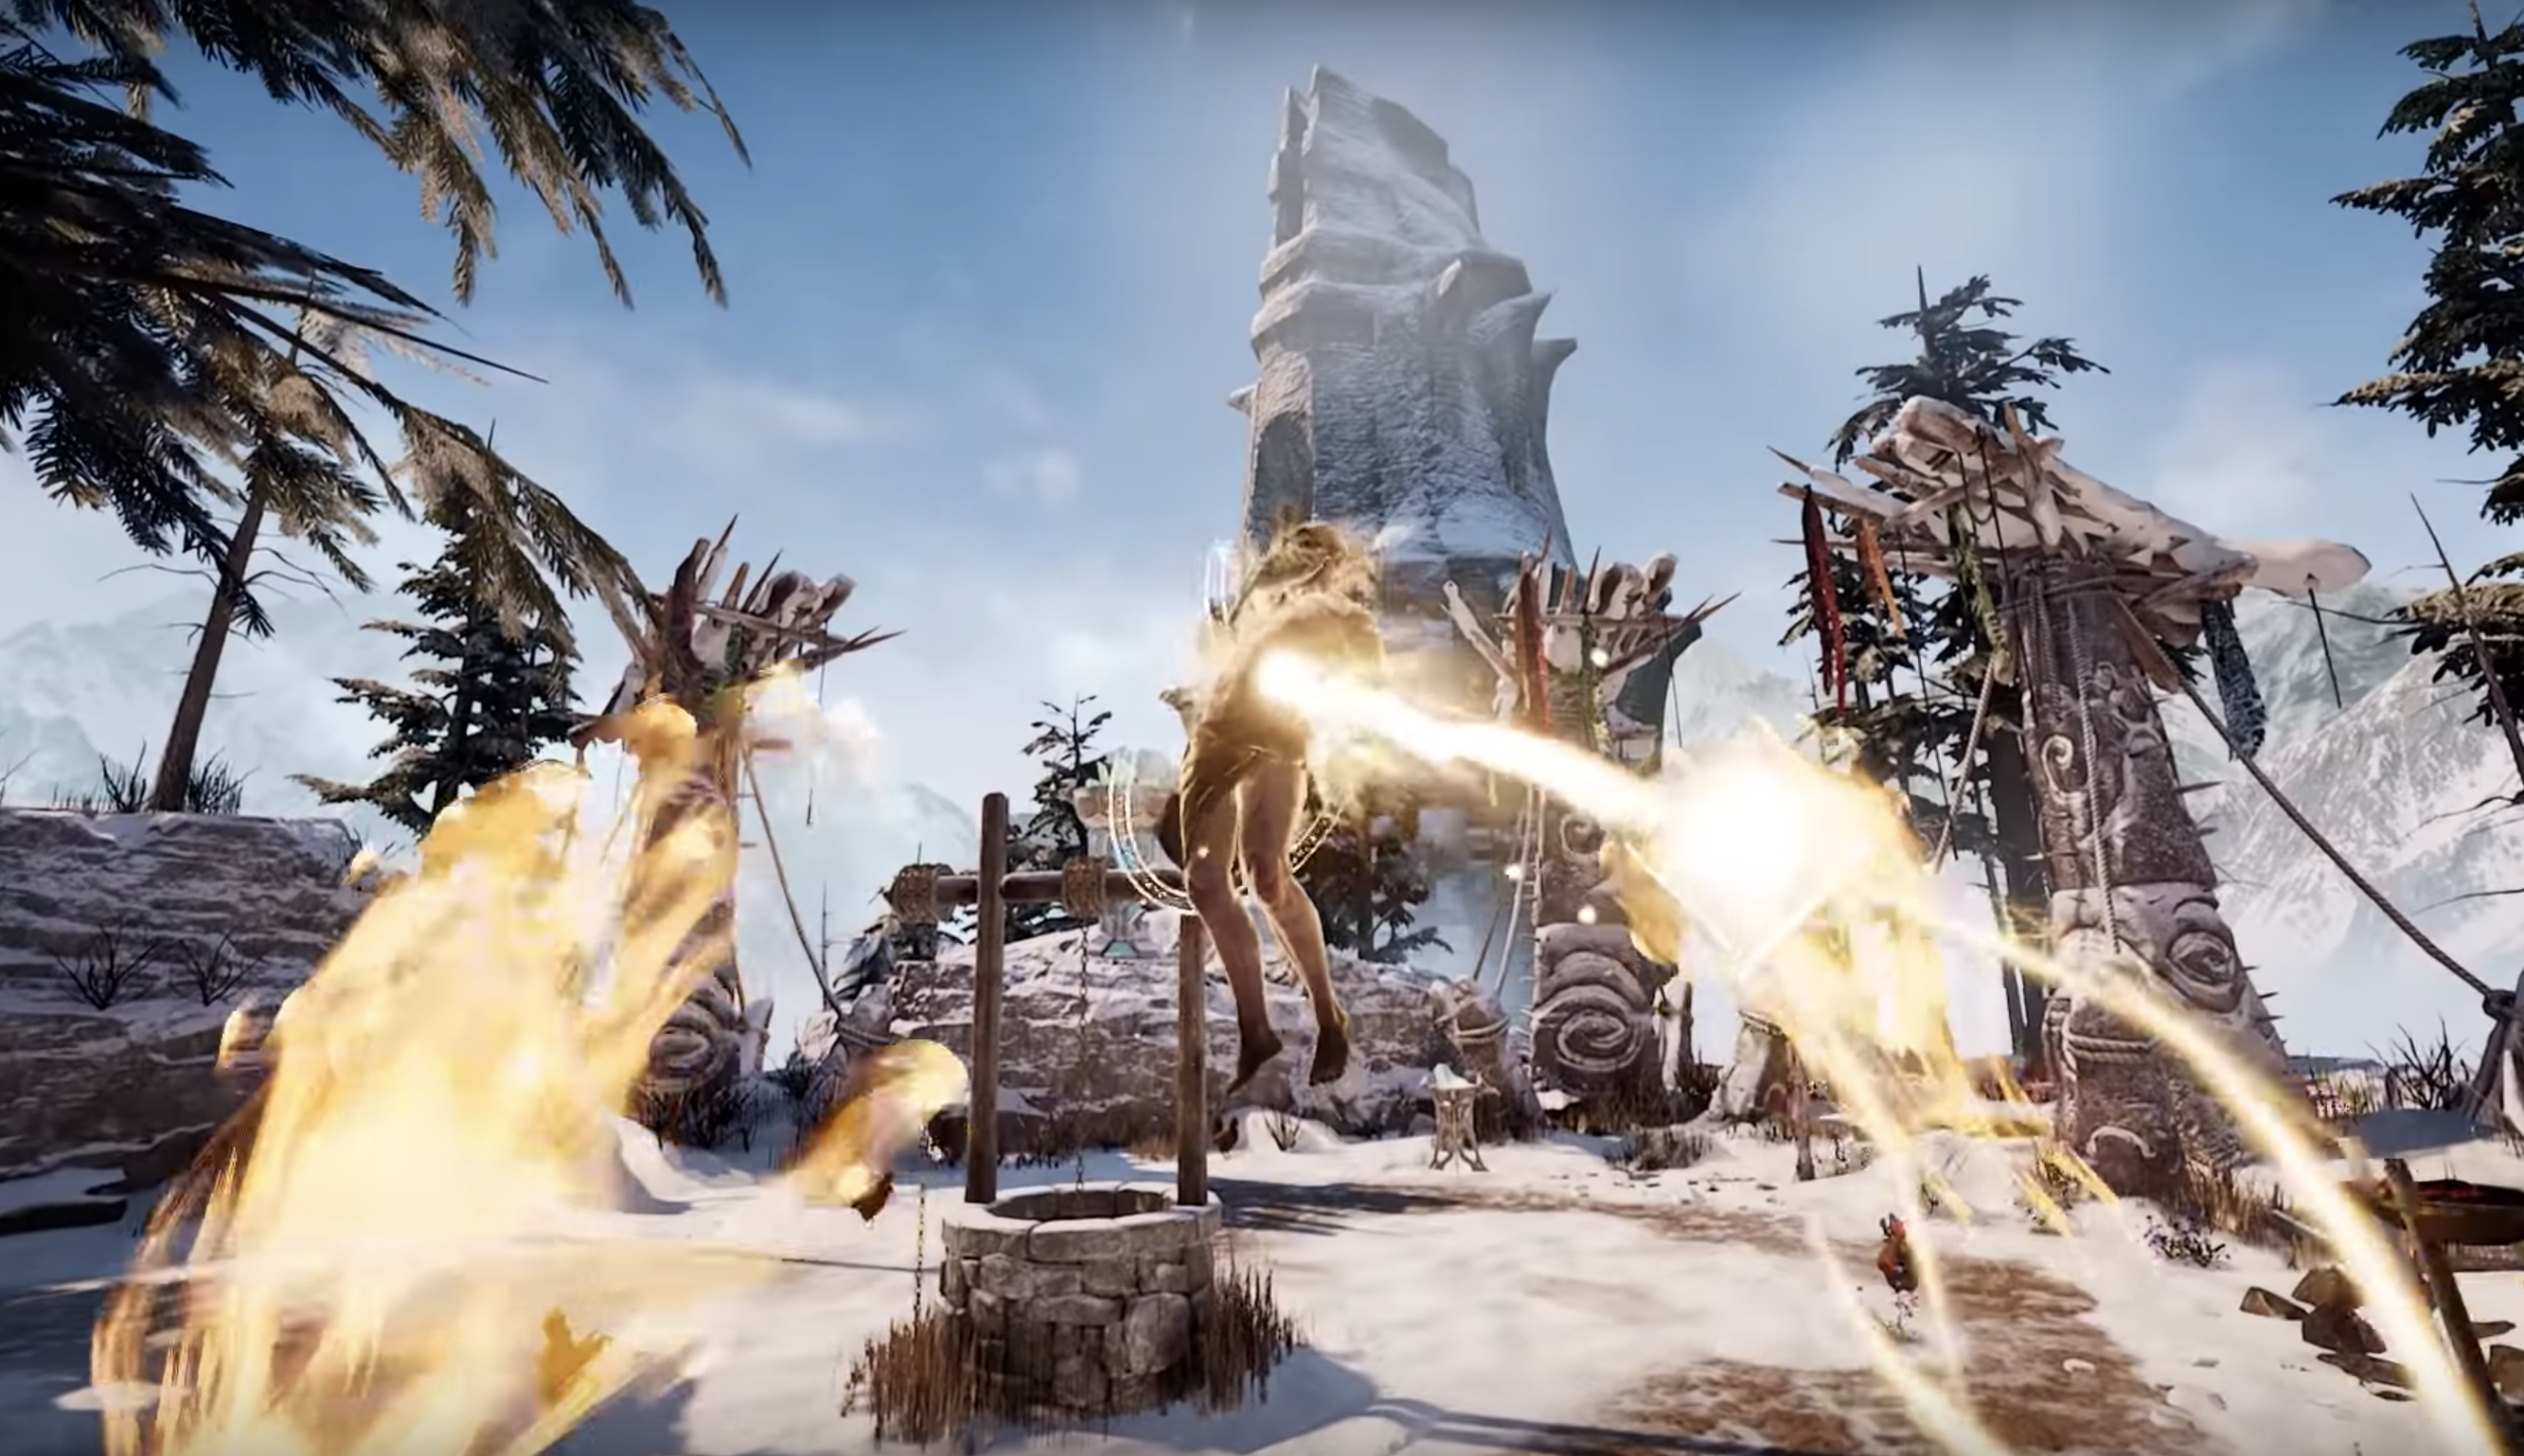 Facebook buys the VR game maker behind 'Asgard's Wrath'